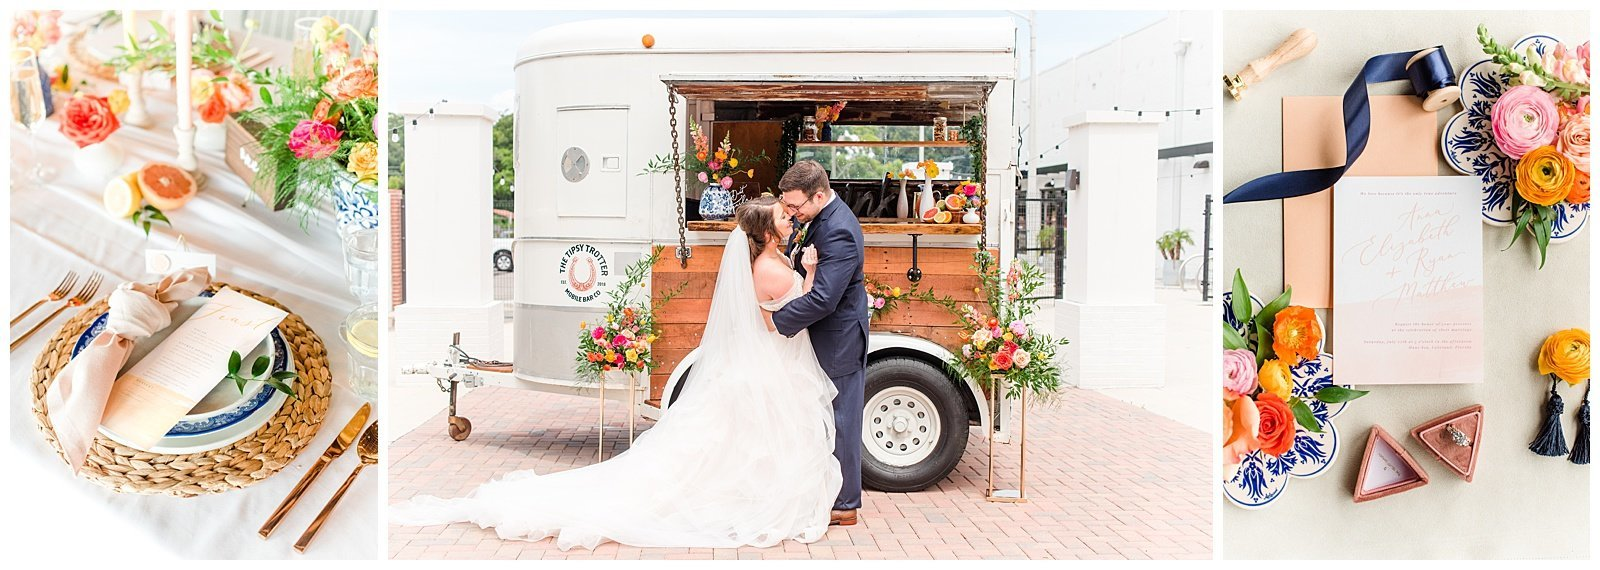 Bright and Colorful Citrus Wedding | Mobile Drink Cart | Sacramento California | Kylie Compton Photography